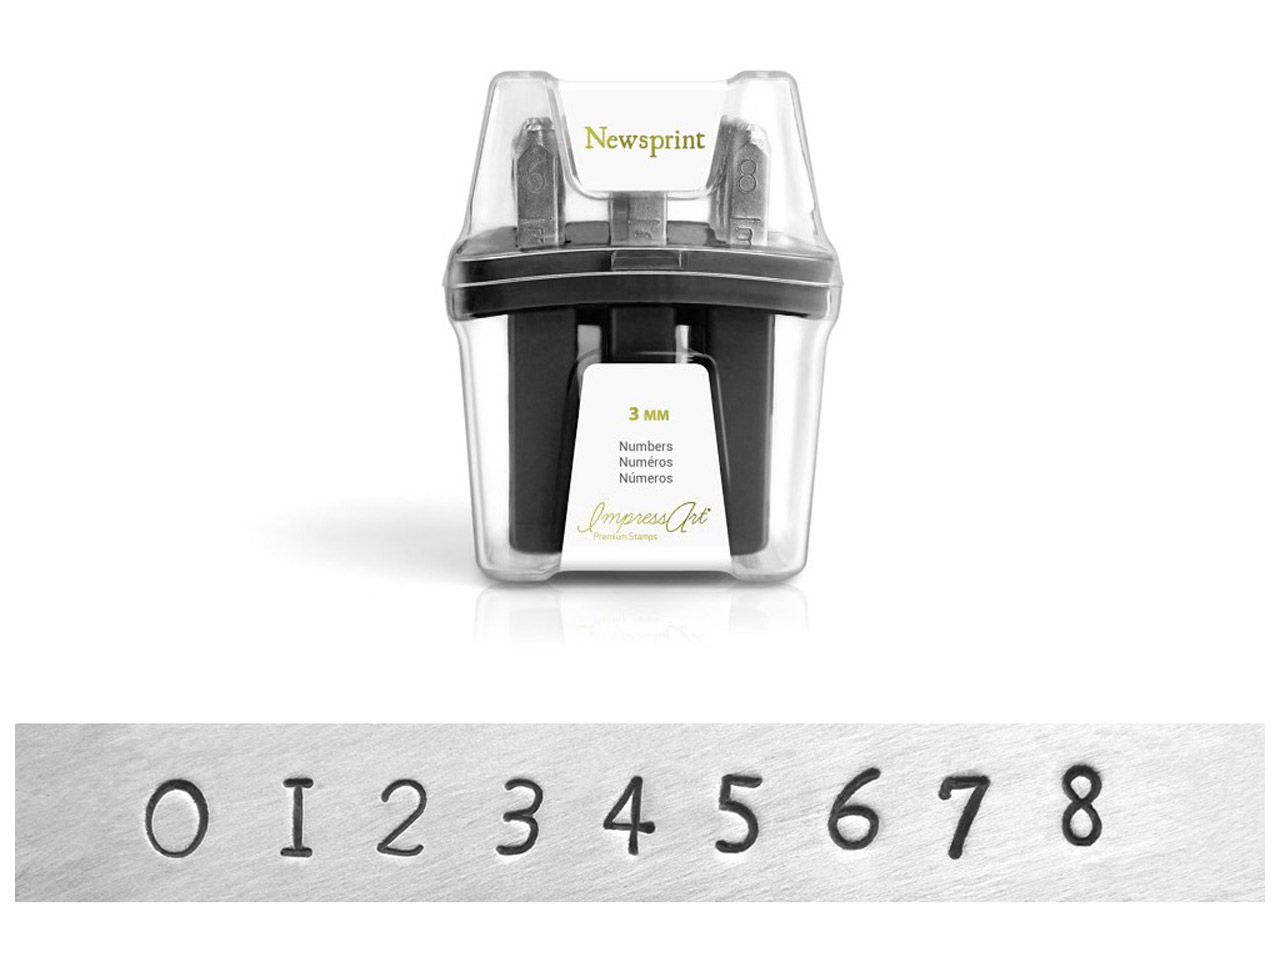 Impressart Newsprint Premium Number Set 3mm